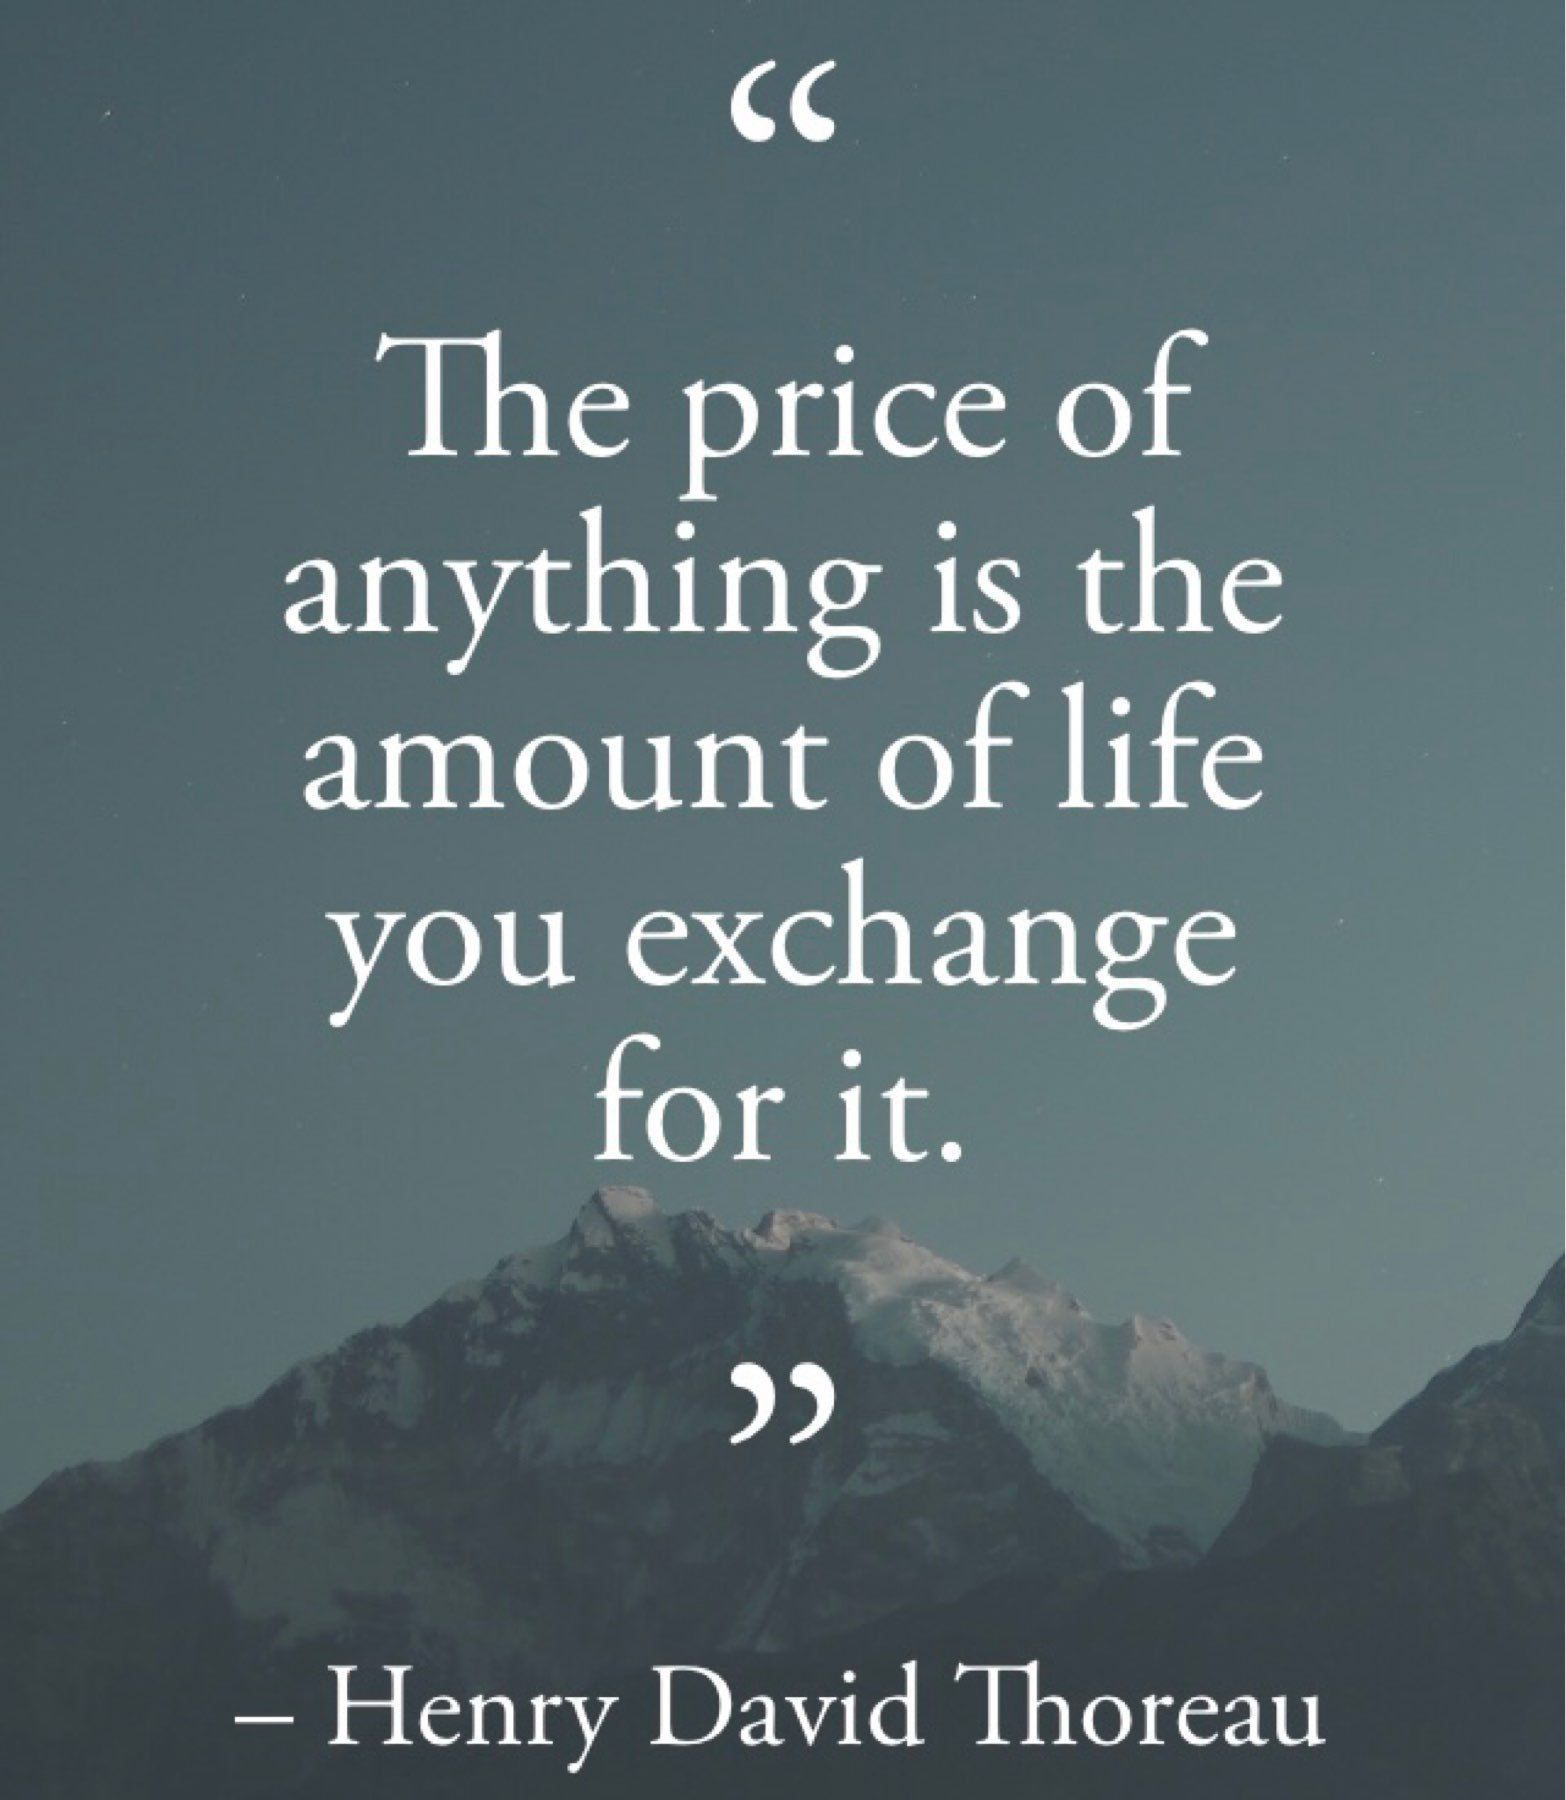 The price of anythjng is the amount of life you exchange for it -Thoreau